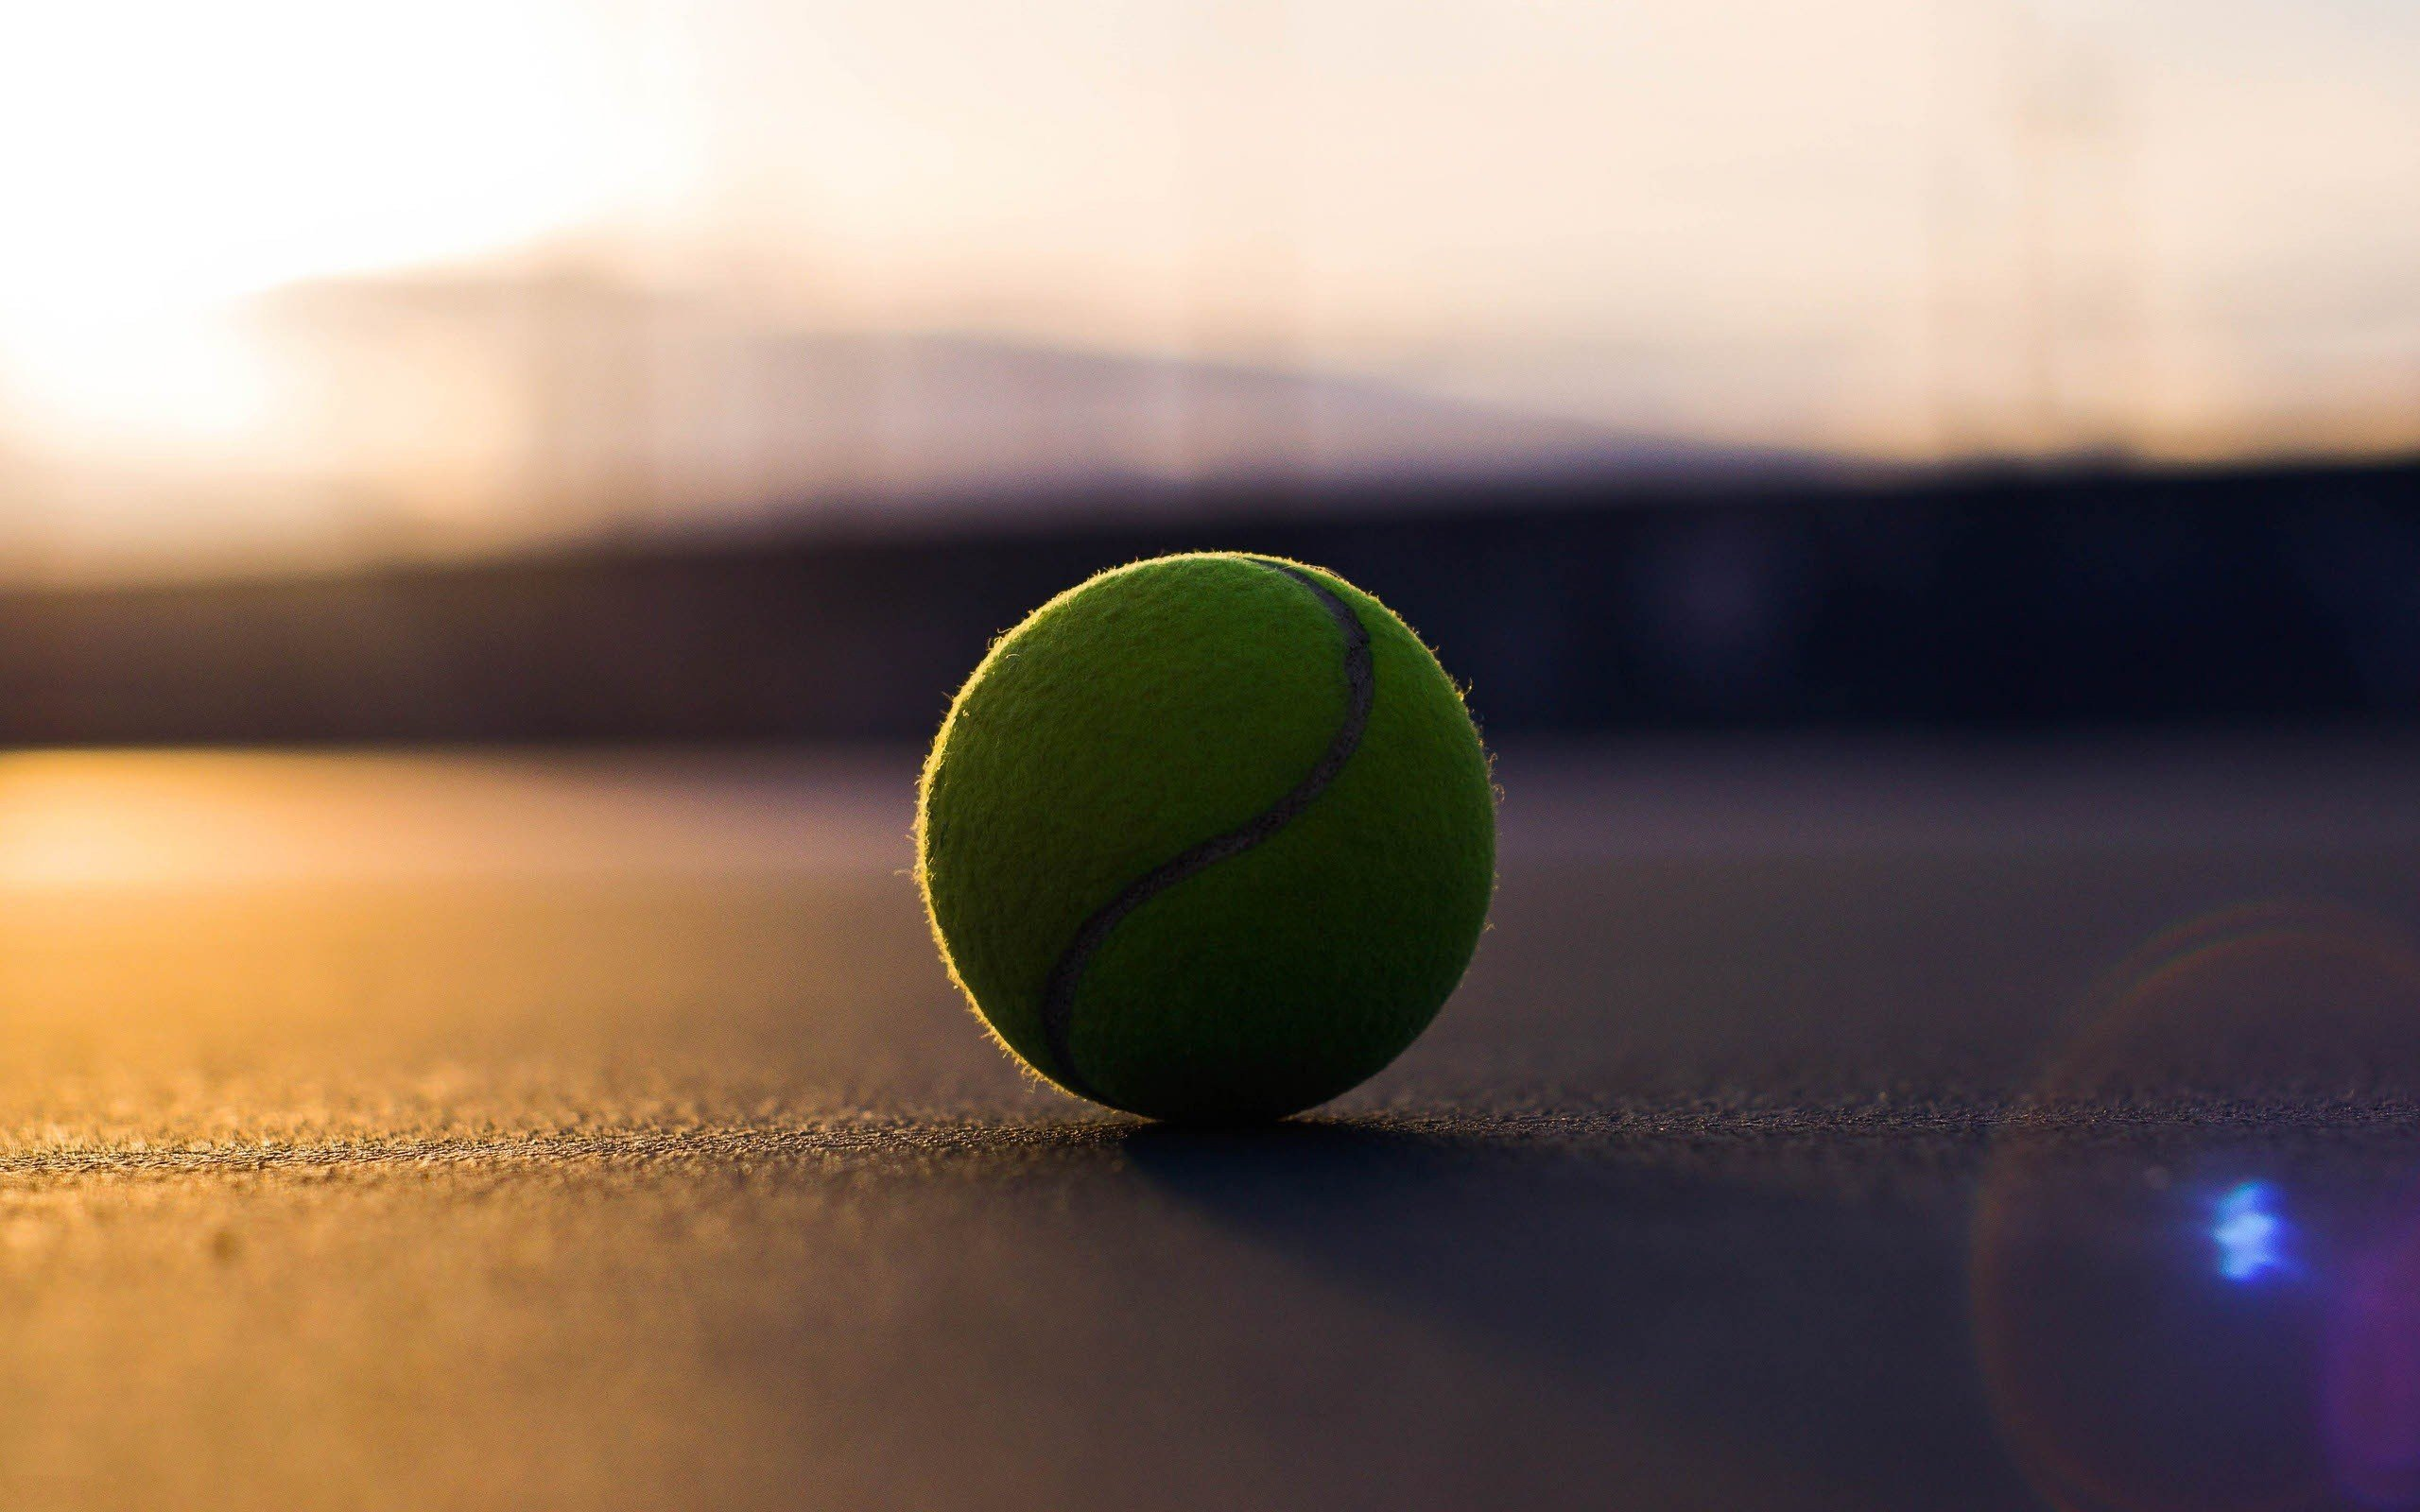 High Resolution Tennis Hd 2560x1600 Wallpaper Id 19142 For Computer